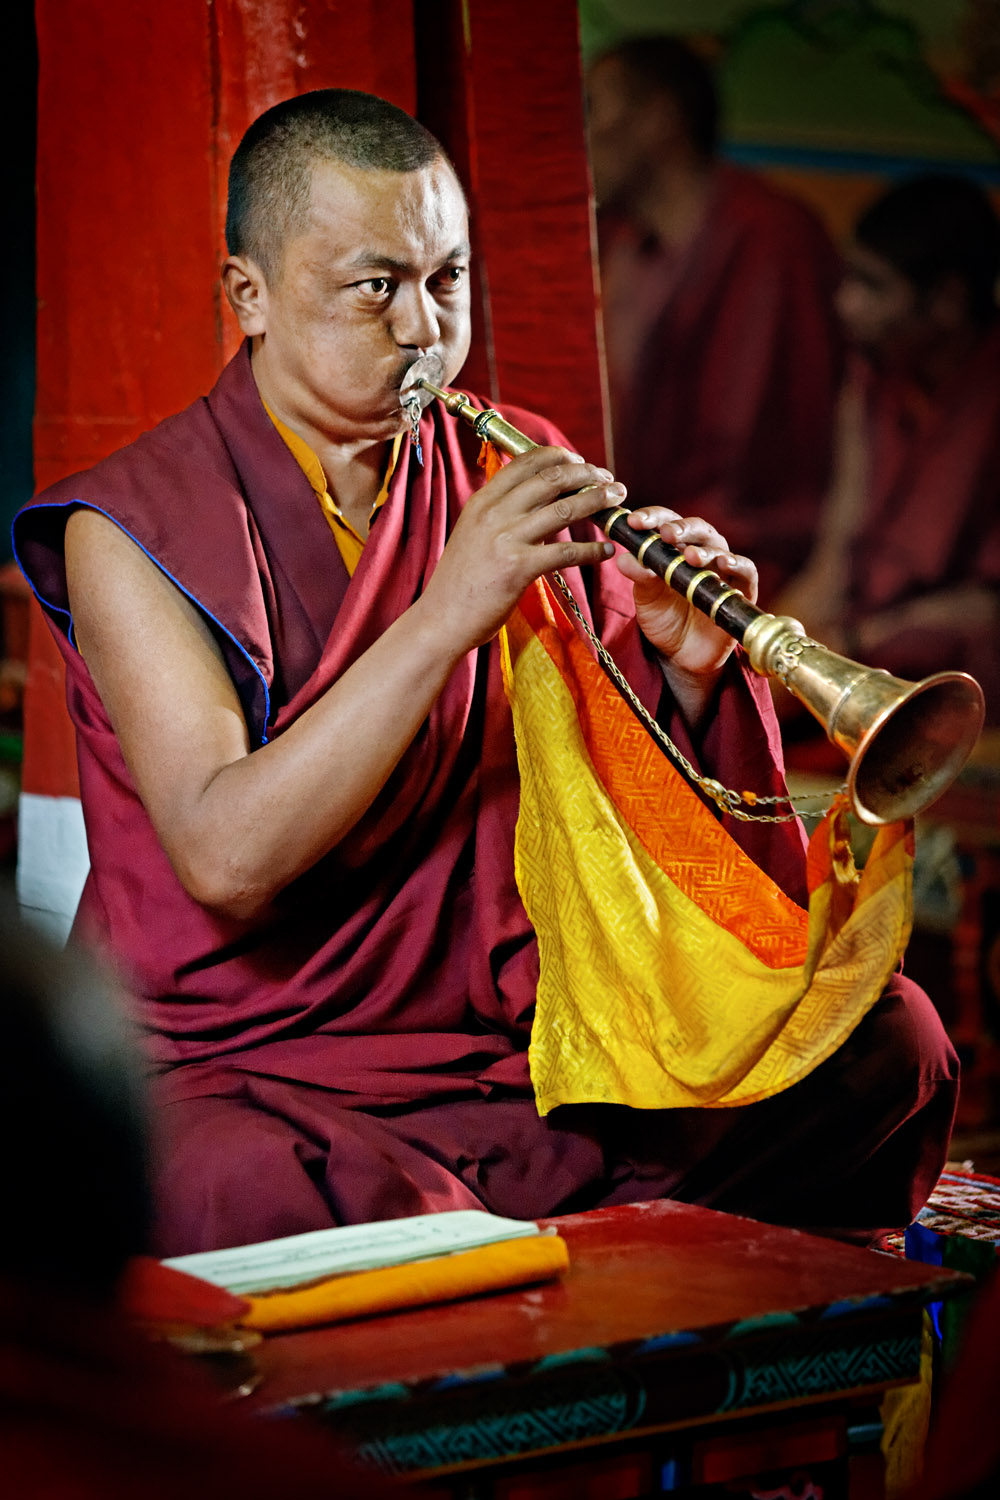 Monk blowing horn, Hemis Monastery